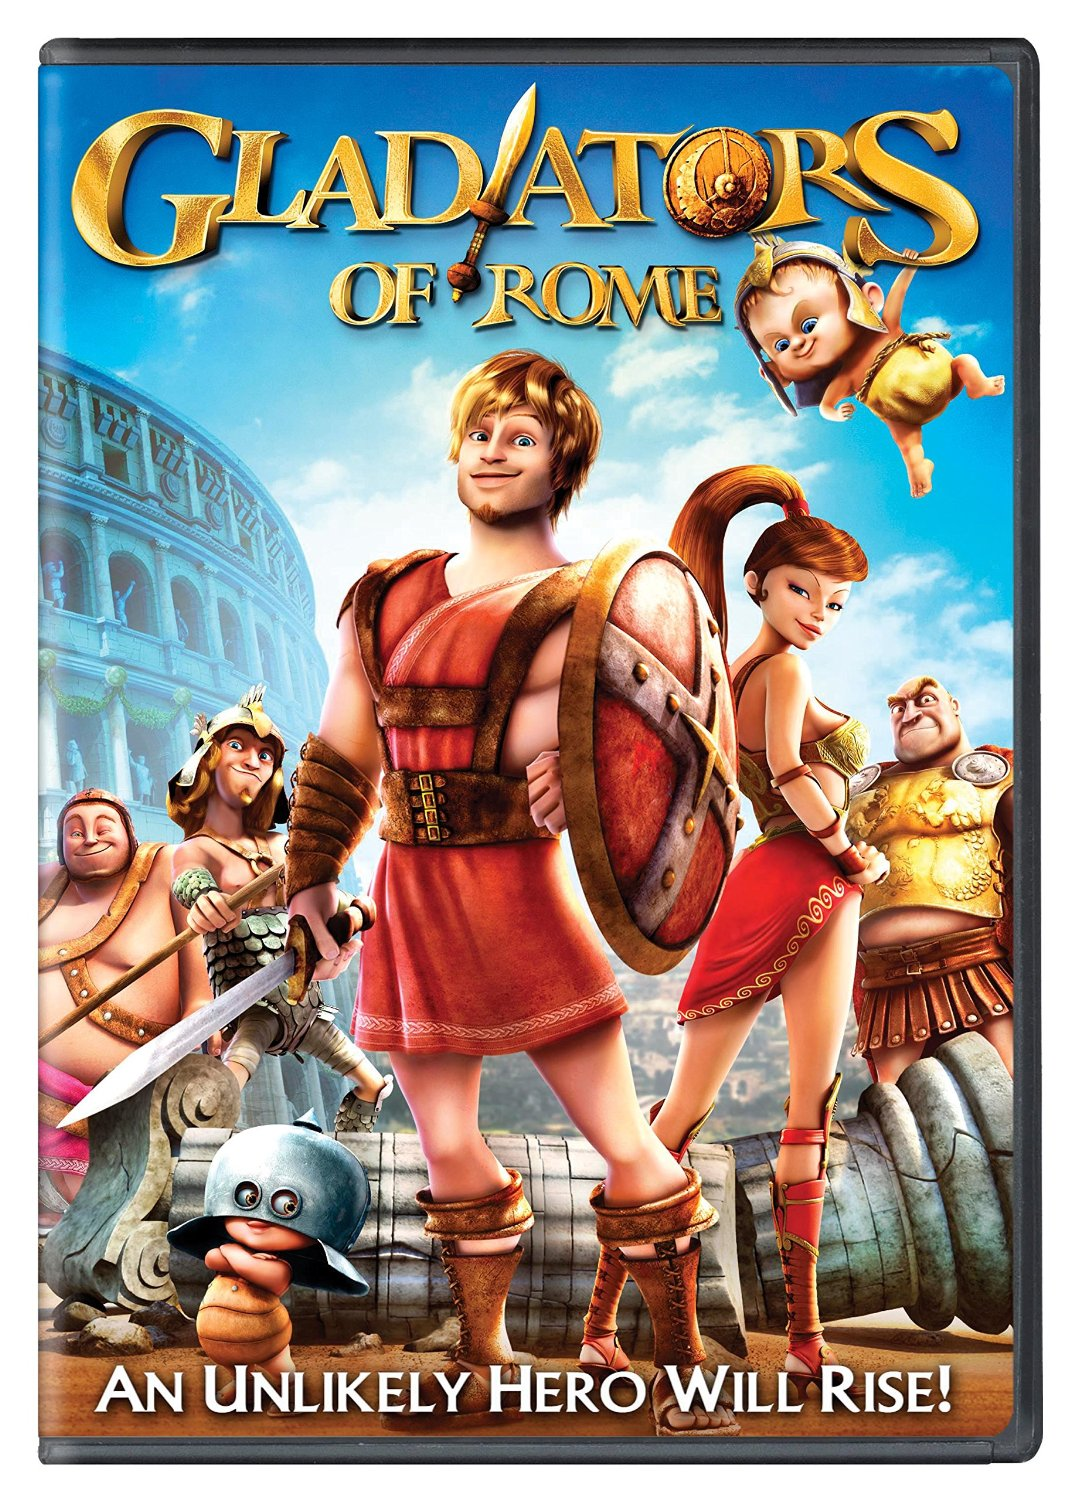 THE GLADIATORS OF ROME DVD